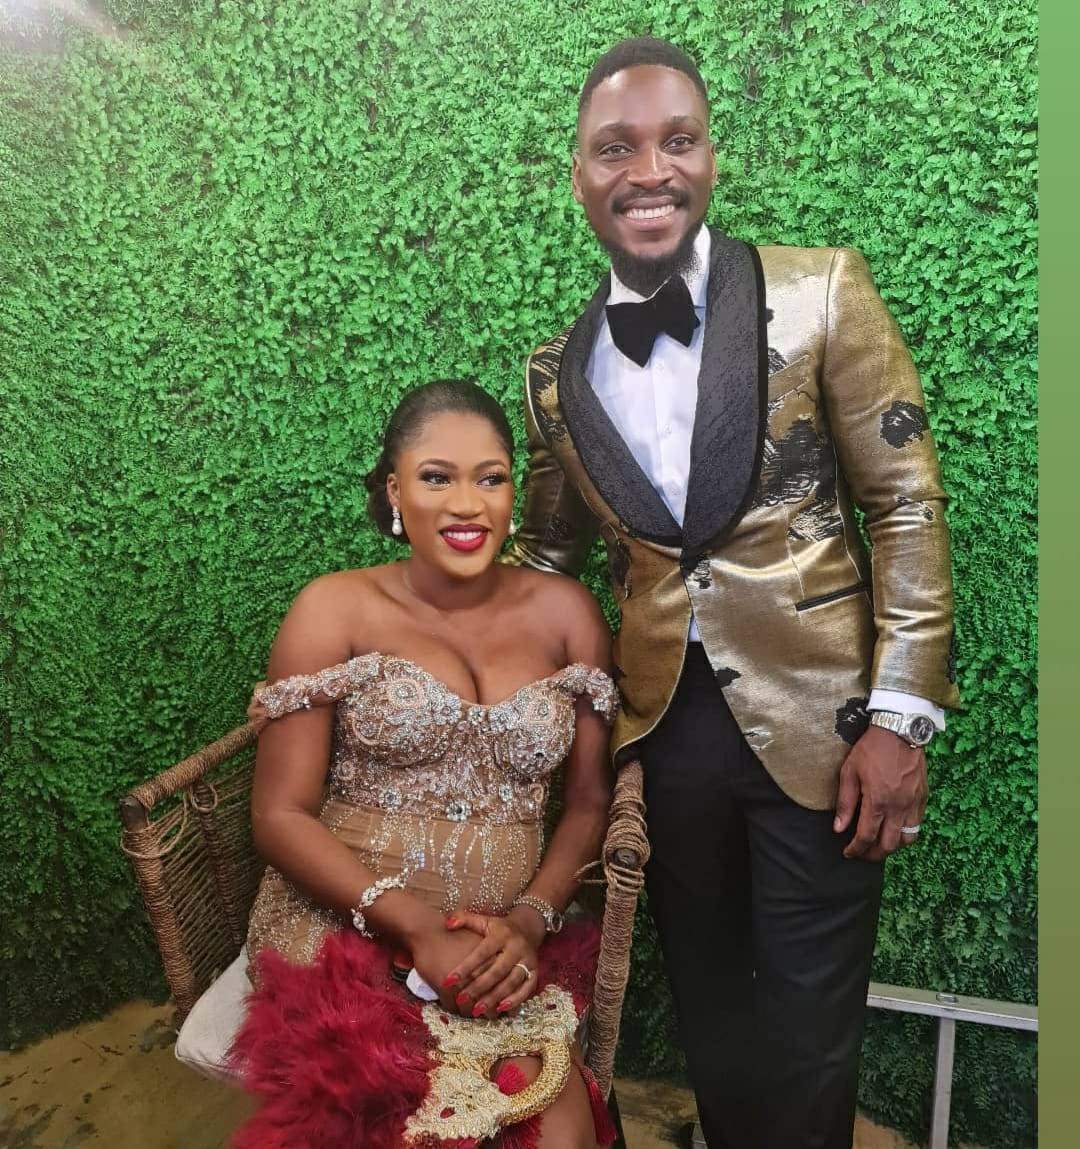 More photos and videos of Tobi Bakre and his woman, Anu Oladosu at their engagement ceremony